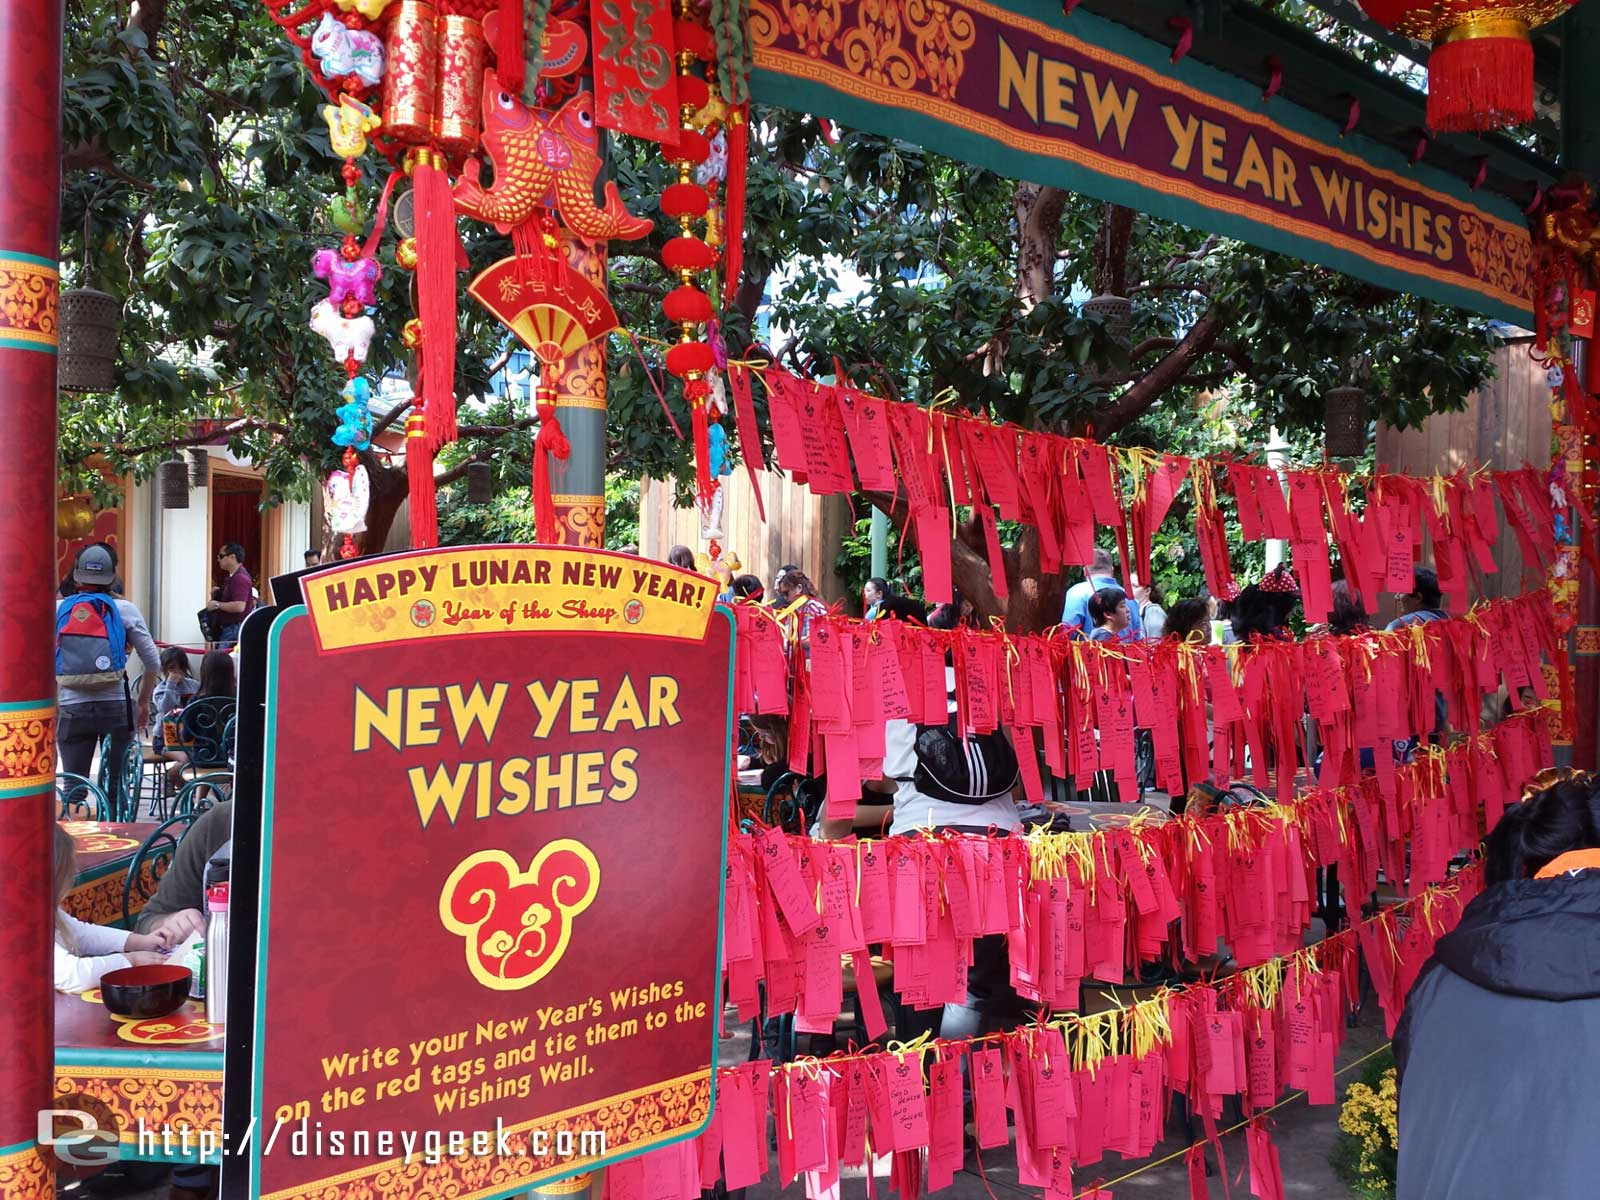 New Year Wishes at the DCA Lunar New Year celebration